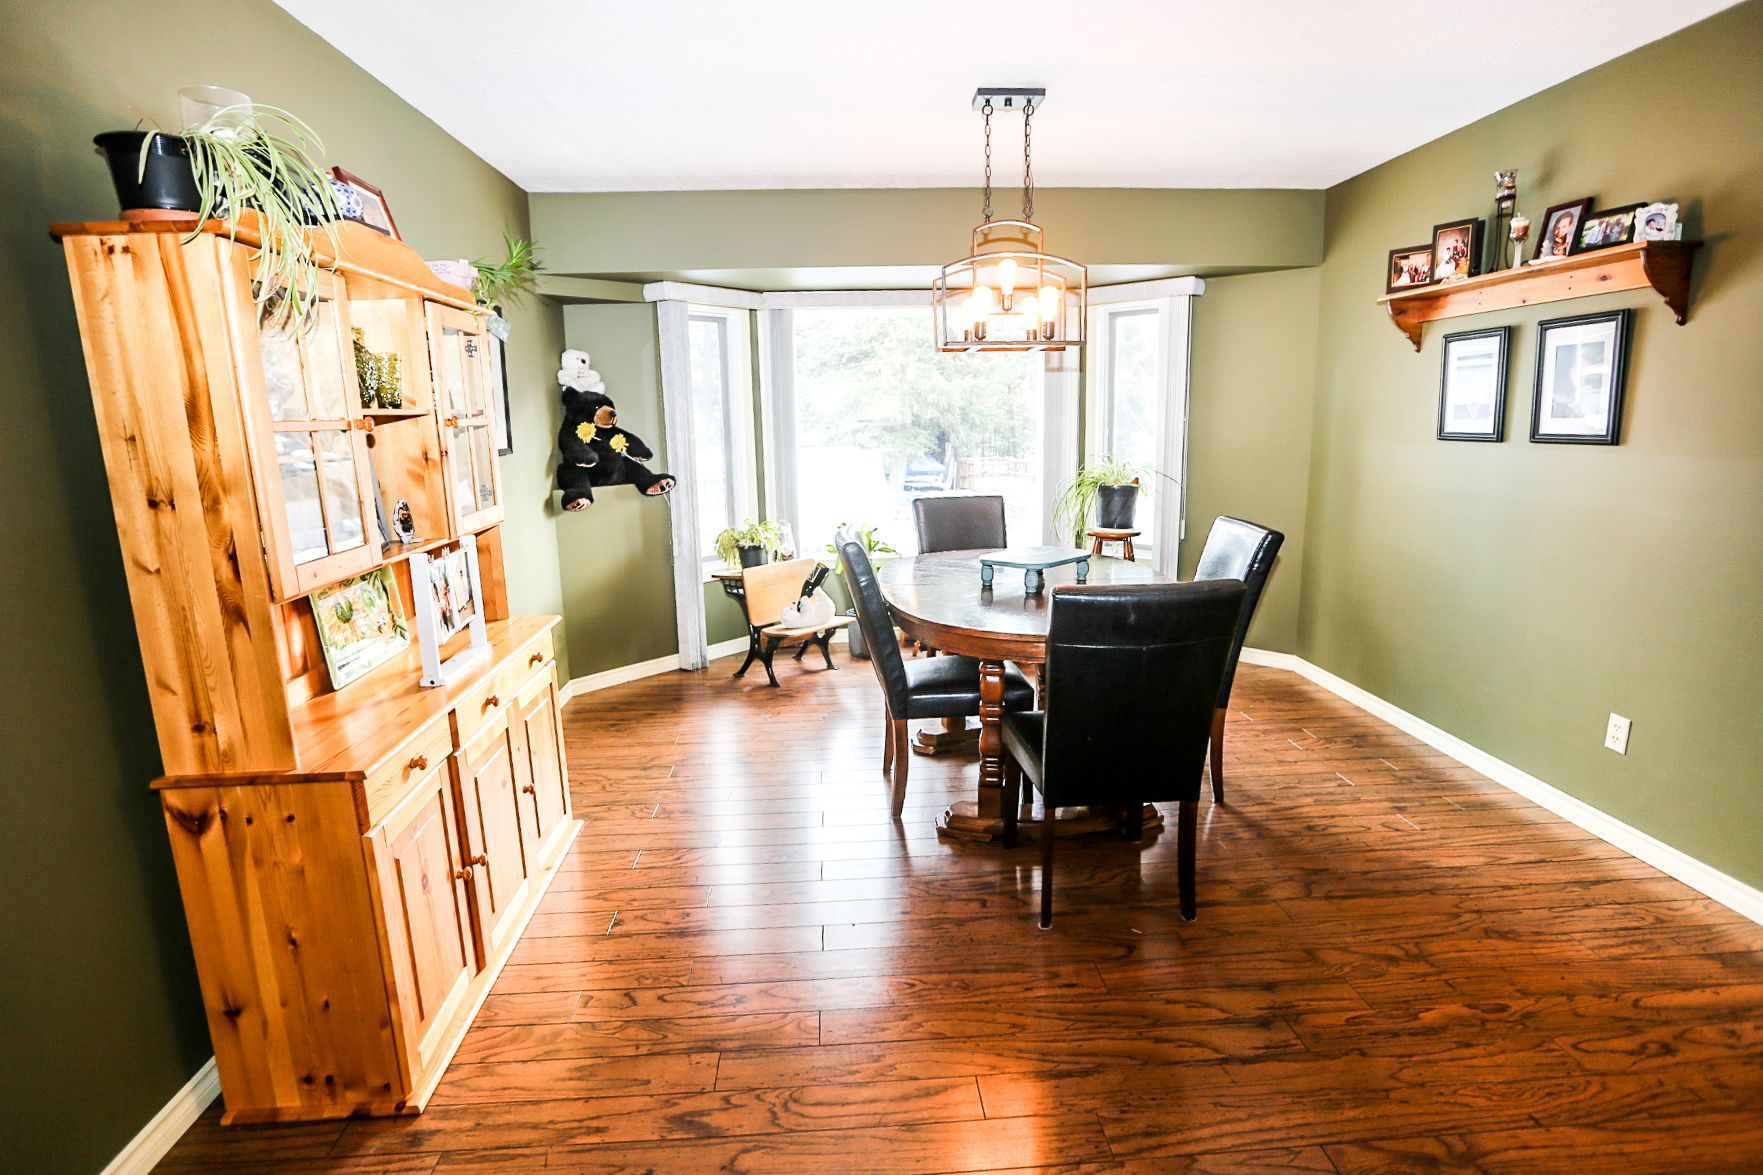 Photo 4: Photos: 434 ROBIN DRIVE: BARRIERE House for sale (NORTH EAST)  : MLS®# 160553